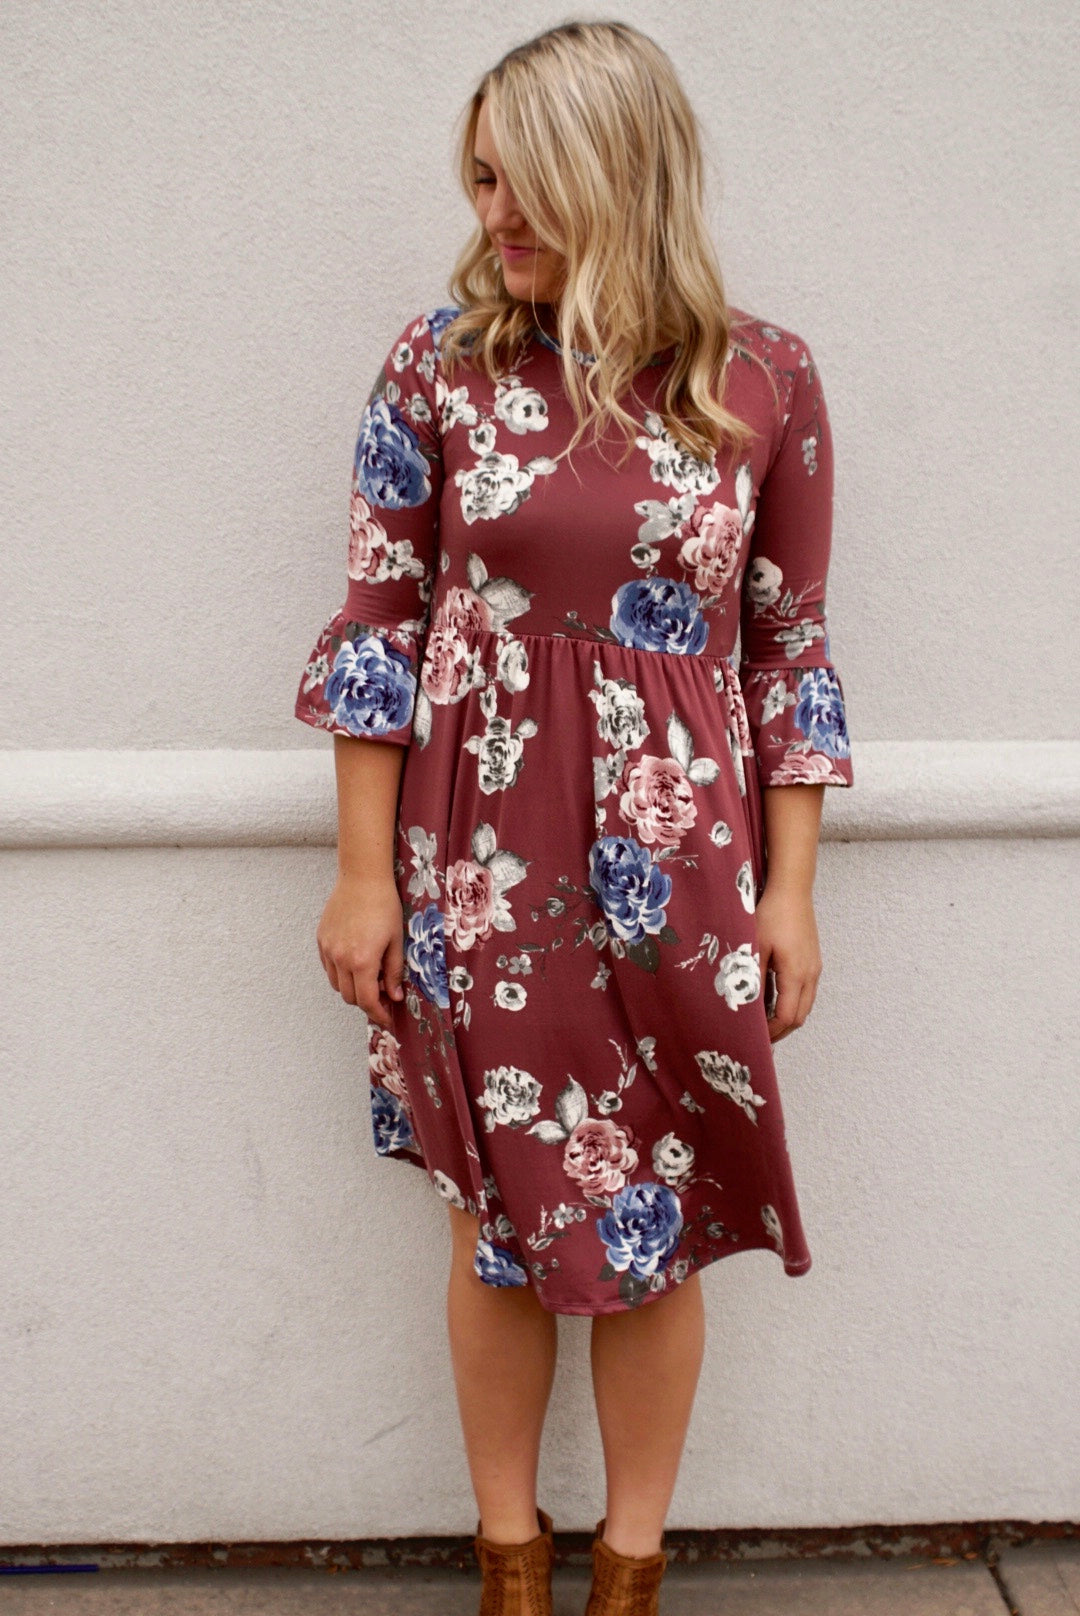 The Emily Dress in Taupe